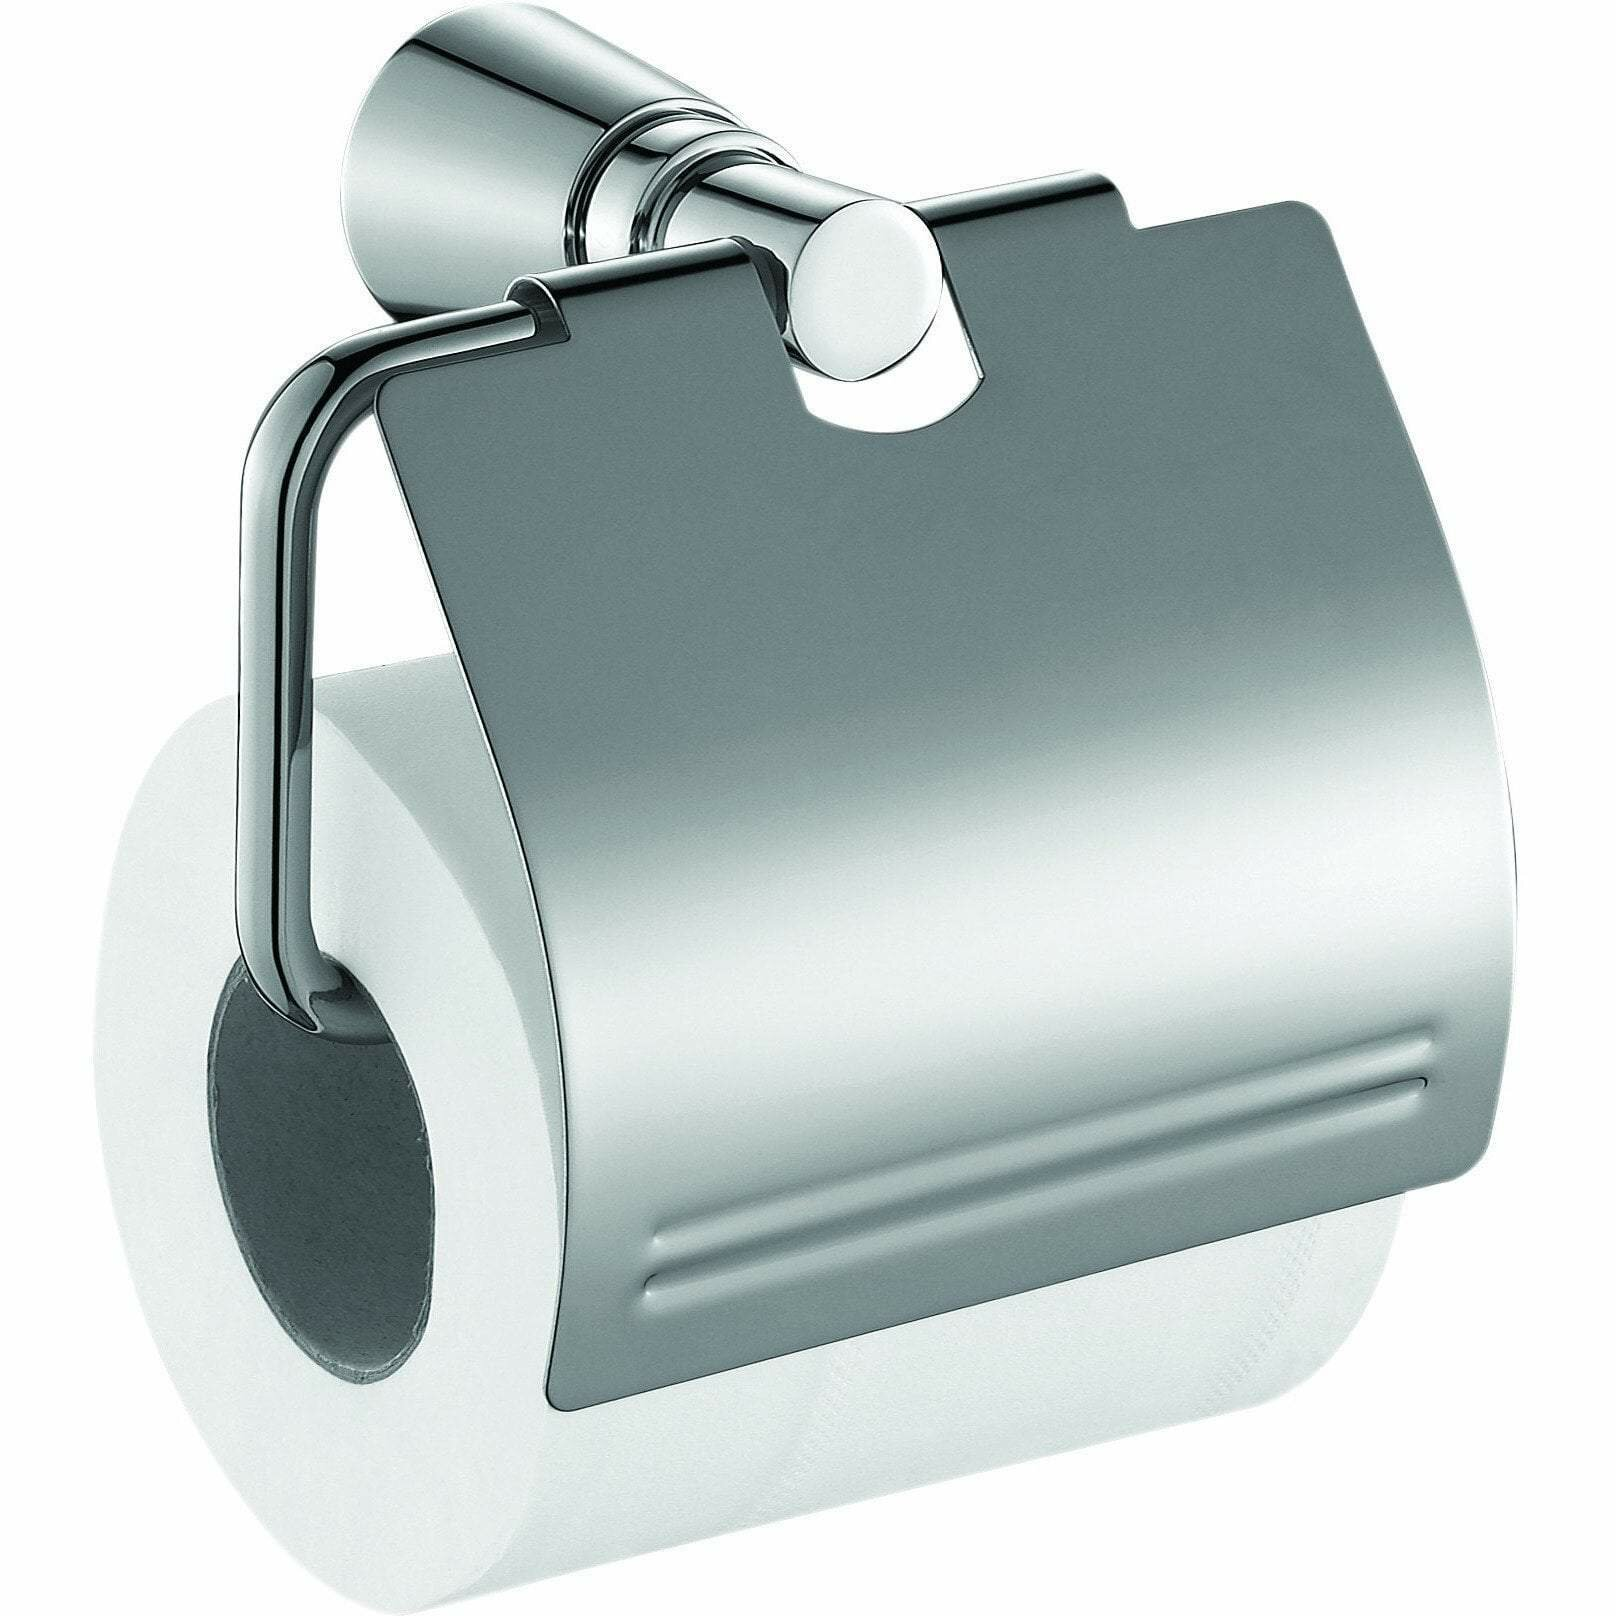 Orren Ellis Sotomayor Wall Mount Toilet Paper Holder With Lid Cover Wayfair